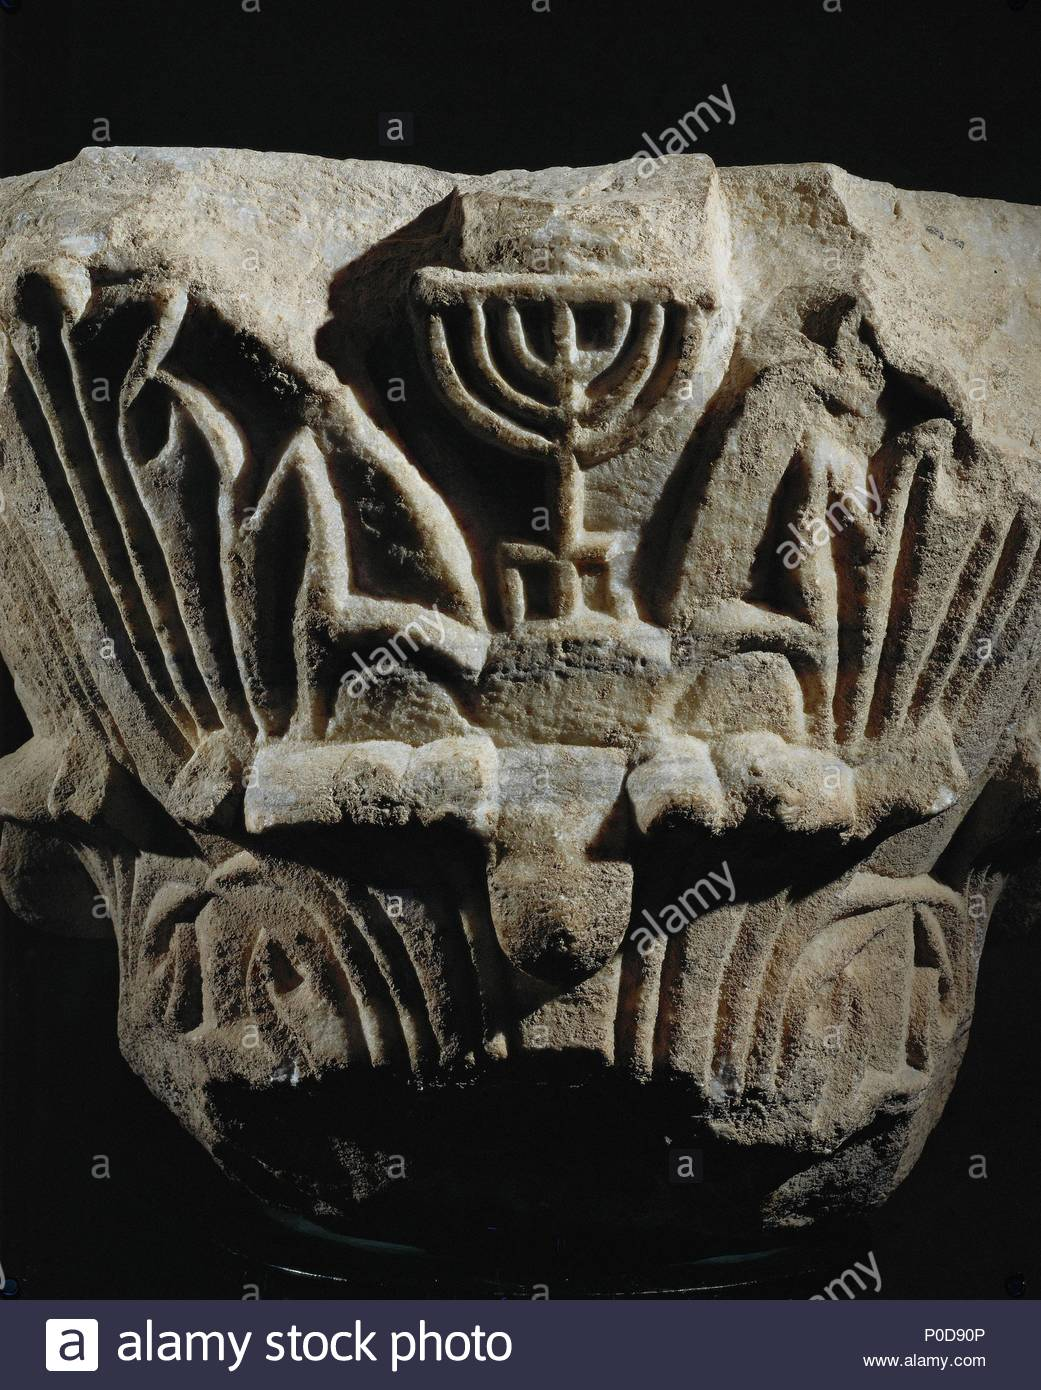 Stone capital showing a menorah carved in relief among acanthus leaves. From a synagogue at Caesarea, Israel. Location: Israel Museum (IDAM), Jerusalem, Israel. - Stock Image